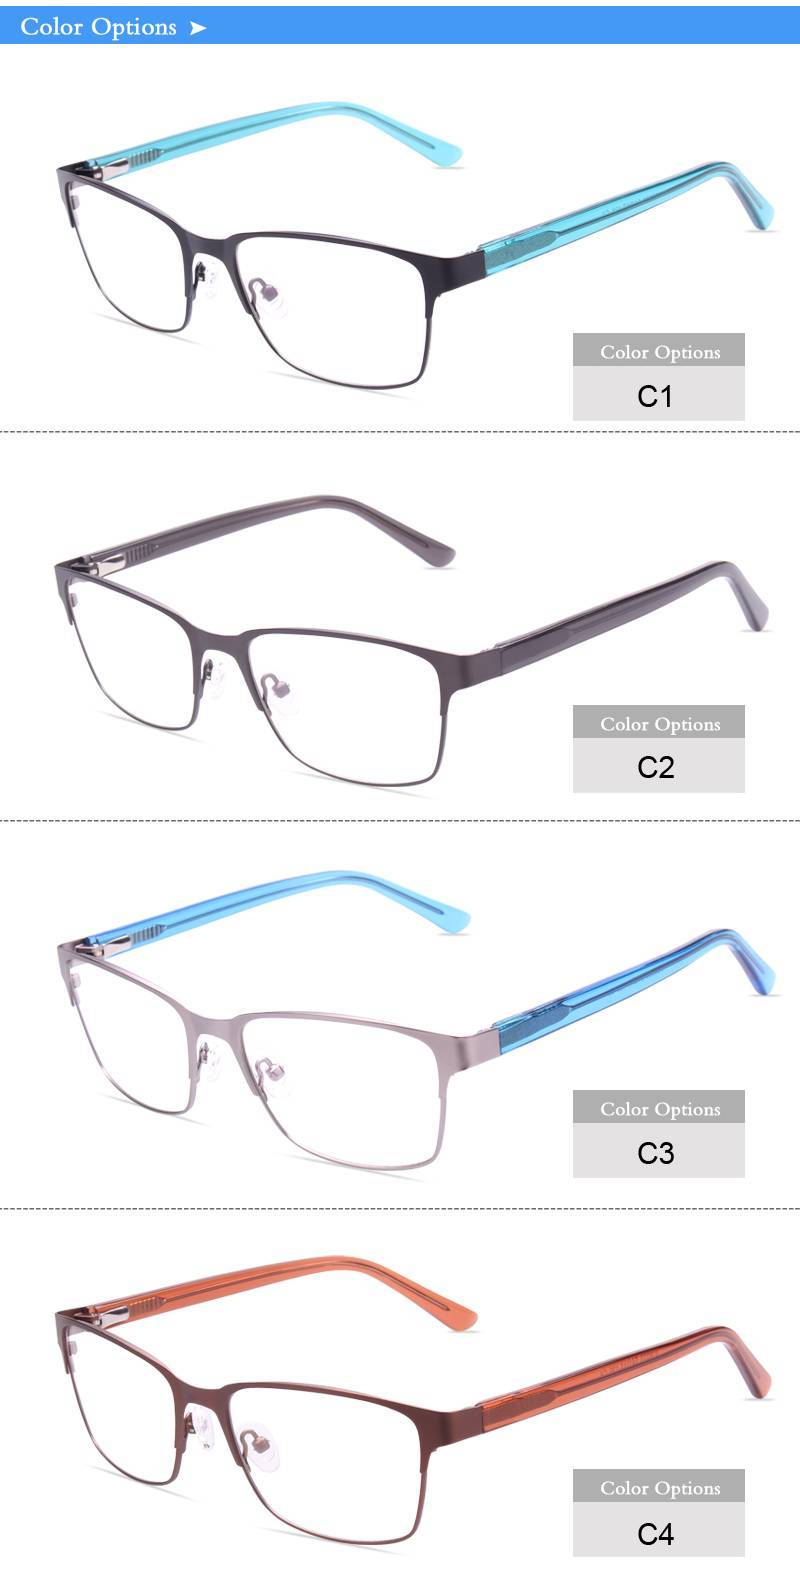 stainless steel flexible eyeglasses frames ready in stock selling in small quantity